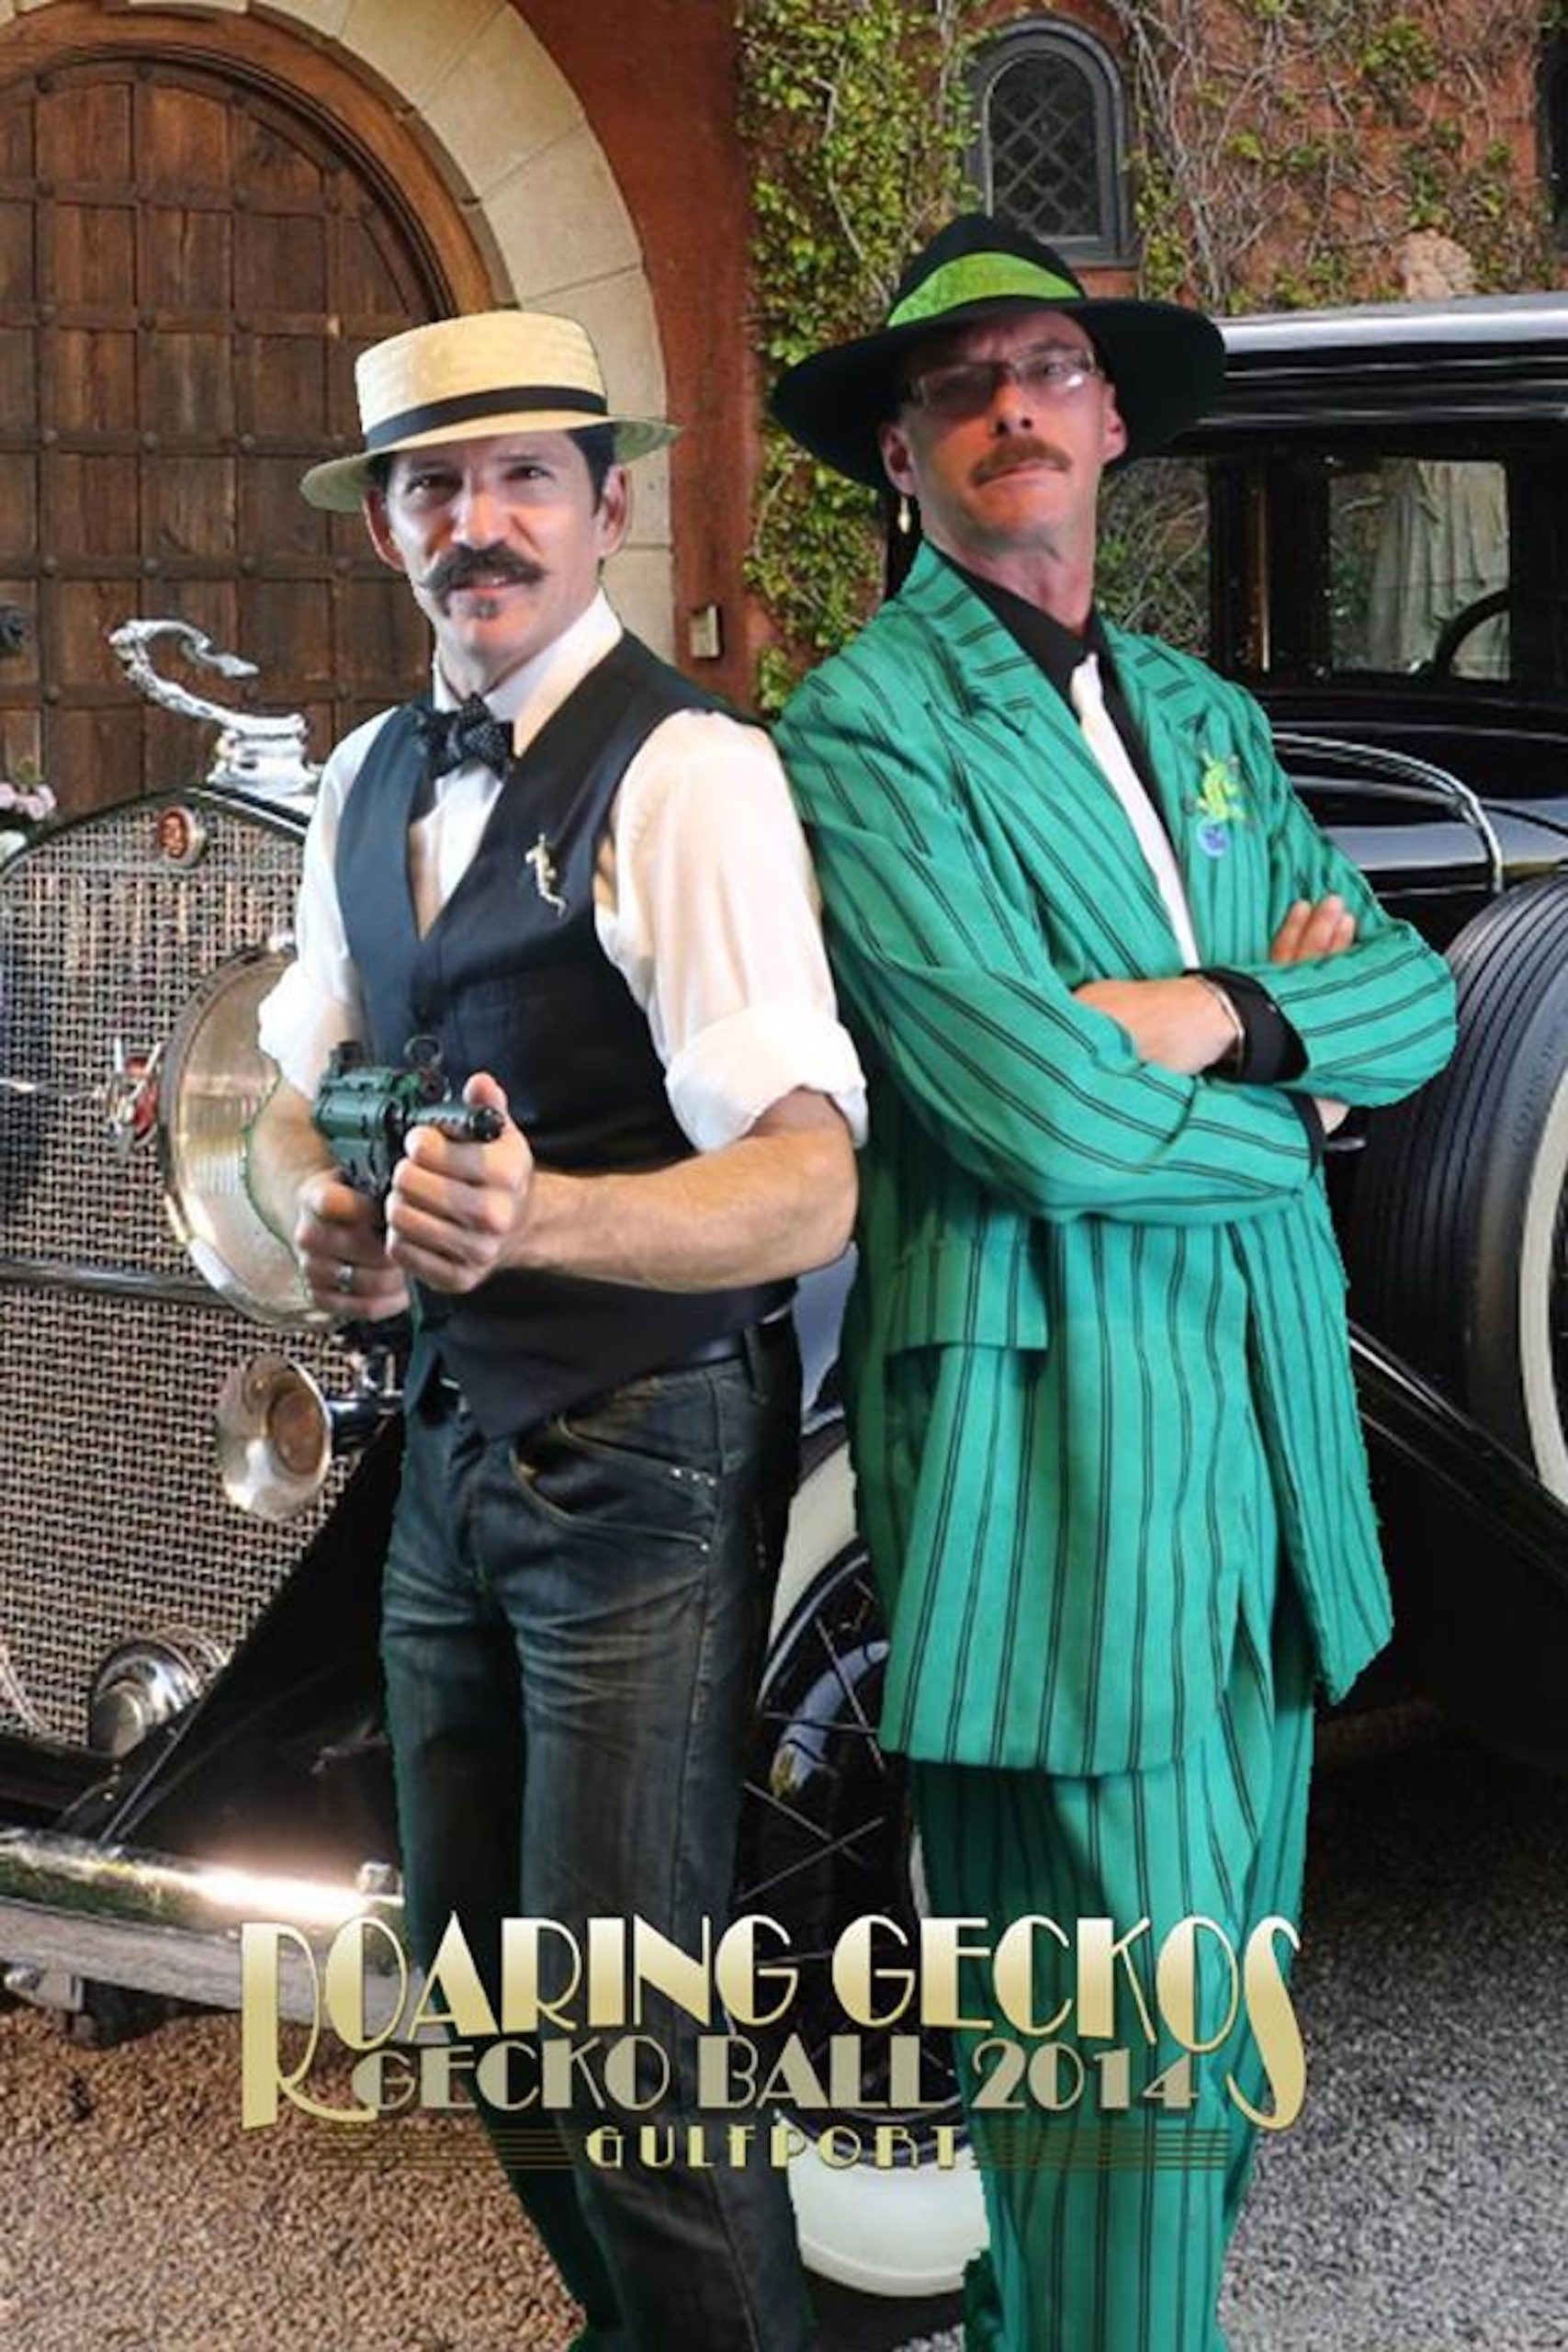 Two men in 1920s gangster costumes, one with machine gun prop and one with green suit, smile at camera.